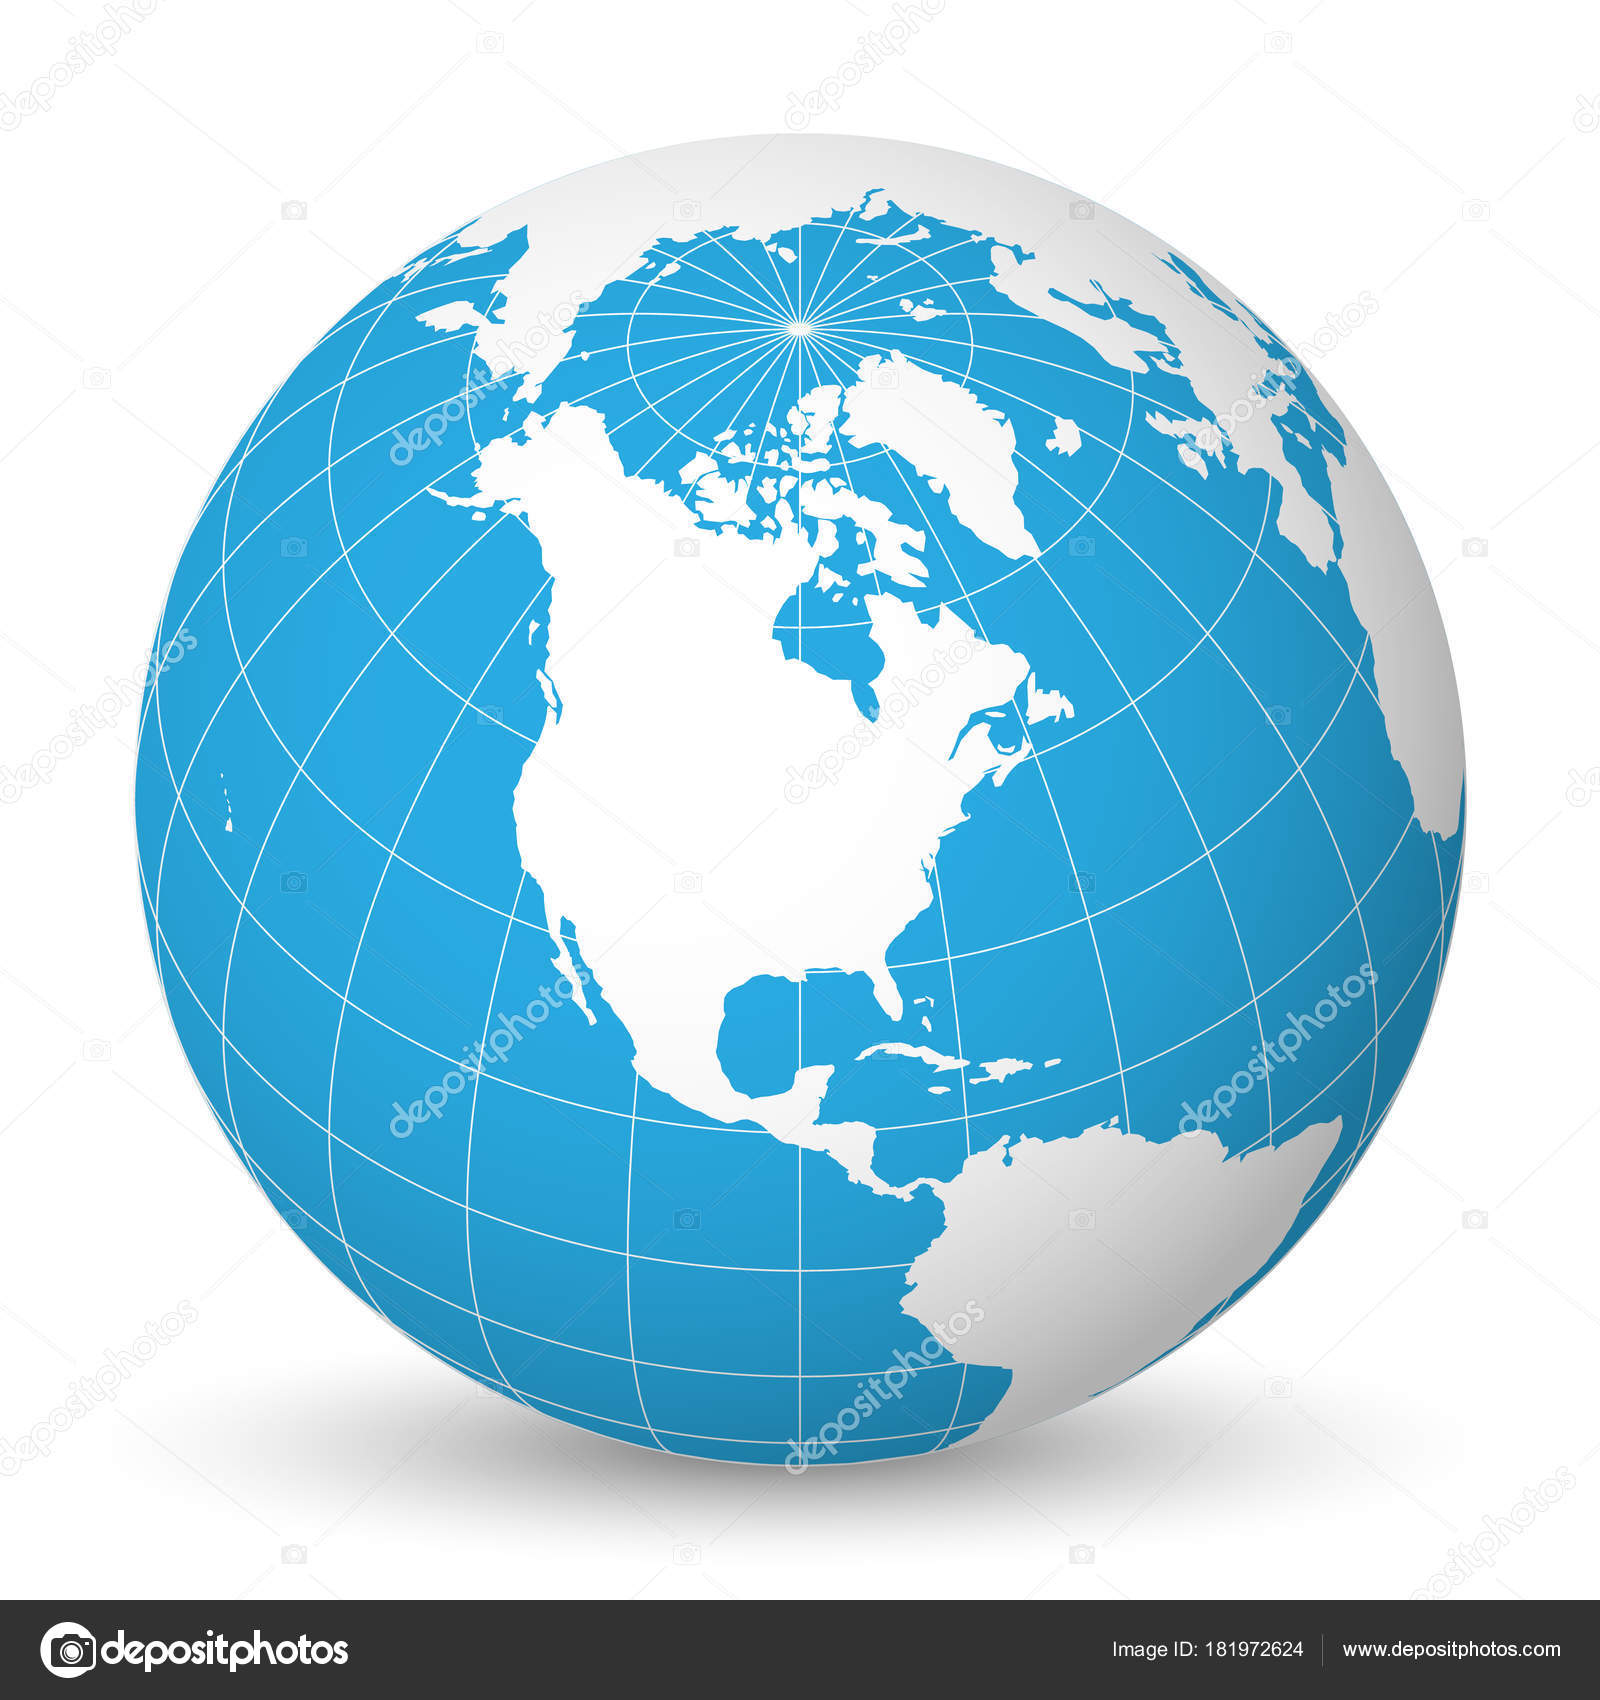 Earth globe with white world map and blue seas and oceans focused on earth globe with green world map and blue seas and oceans focused on north america with thin white meridians and parallels 3d vector illustration gumiabroncs Gallery